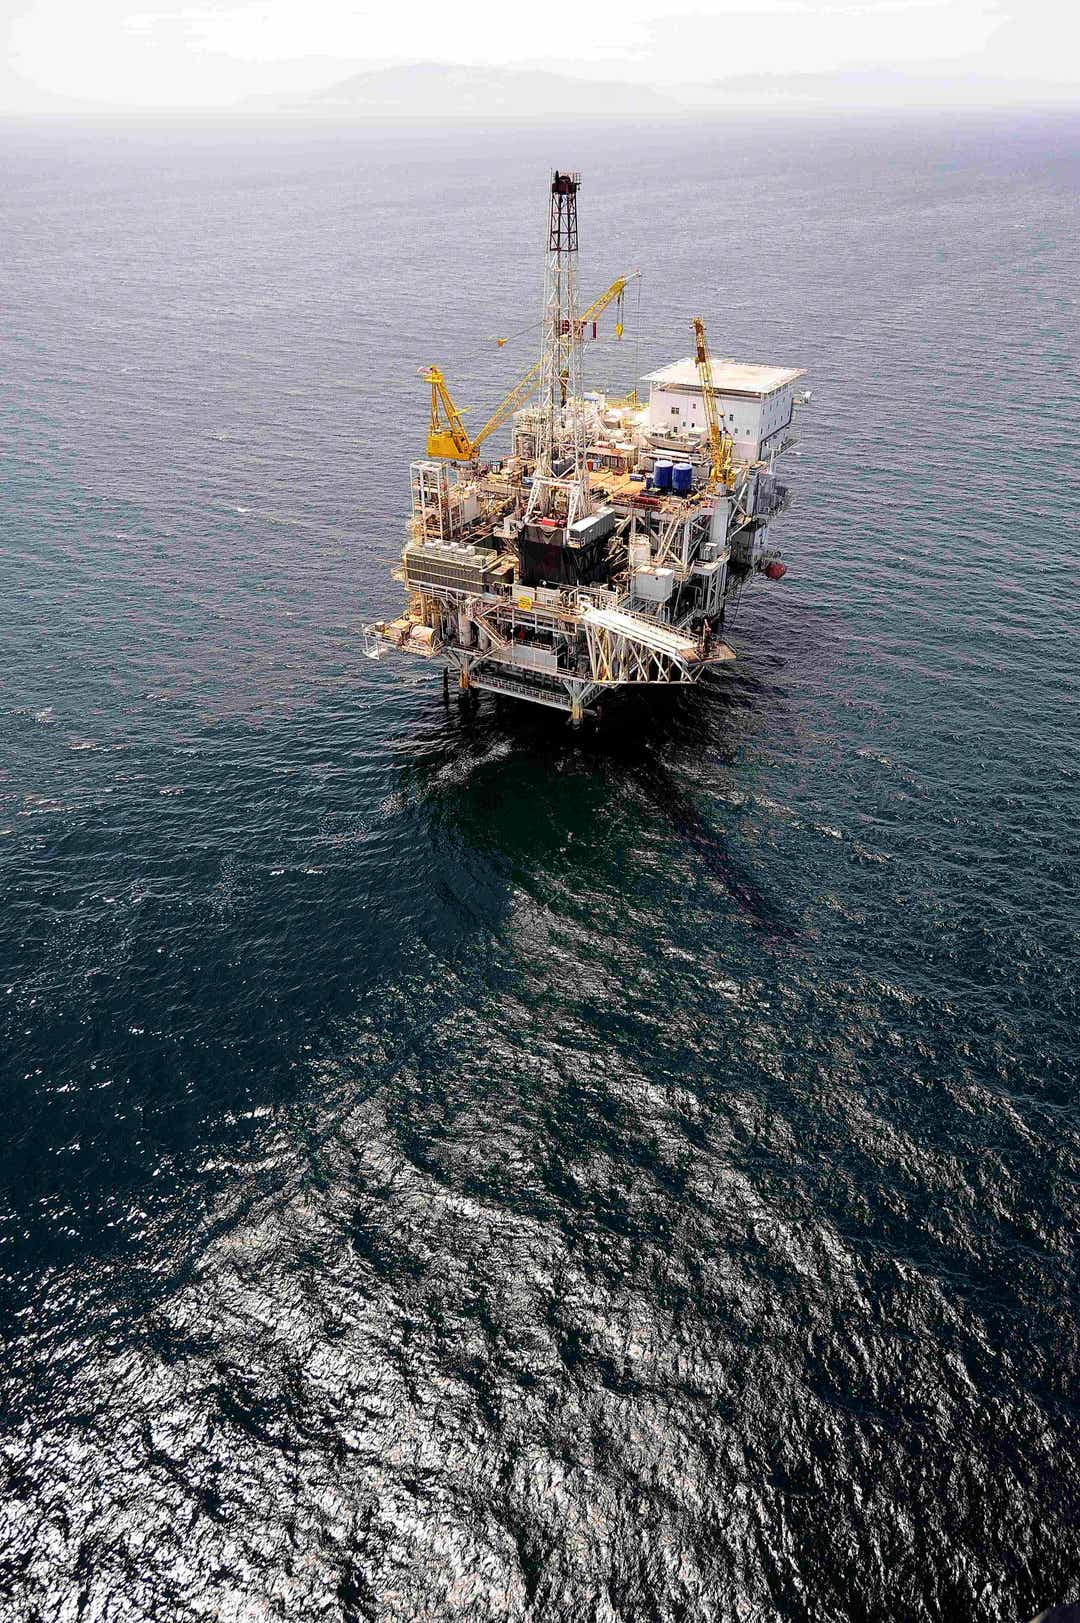 Republicans like me are breaking with Trump on offshore oil drilling